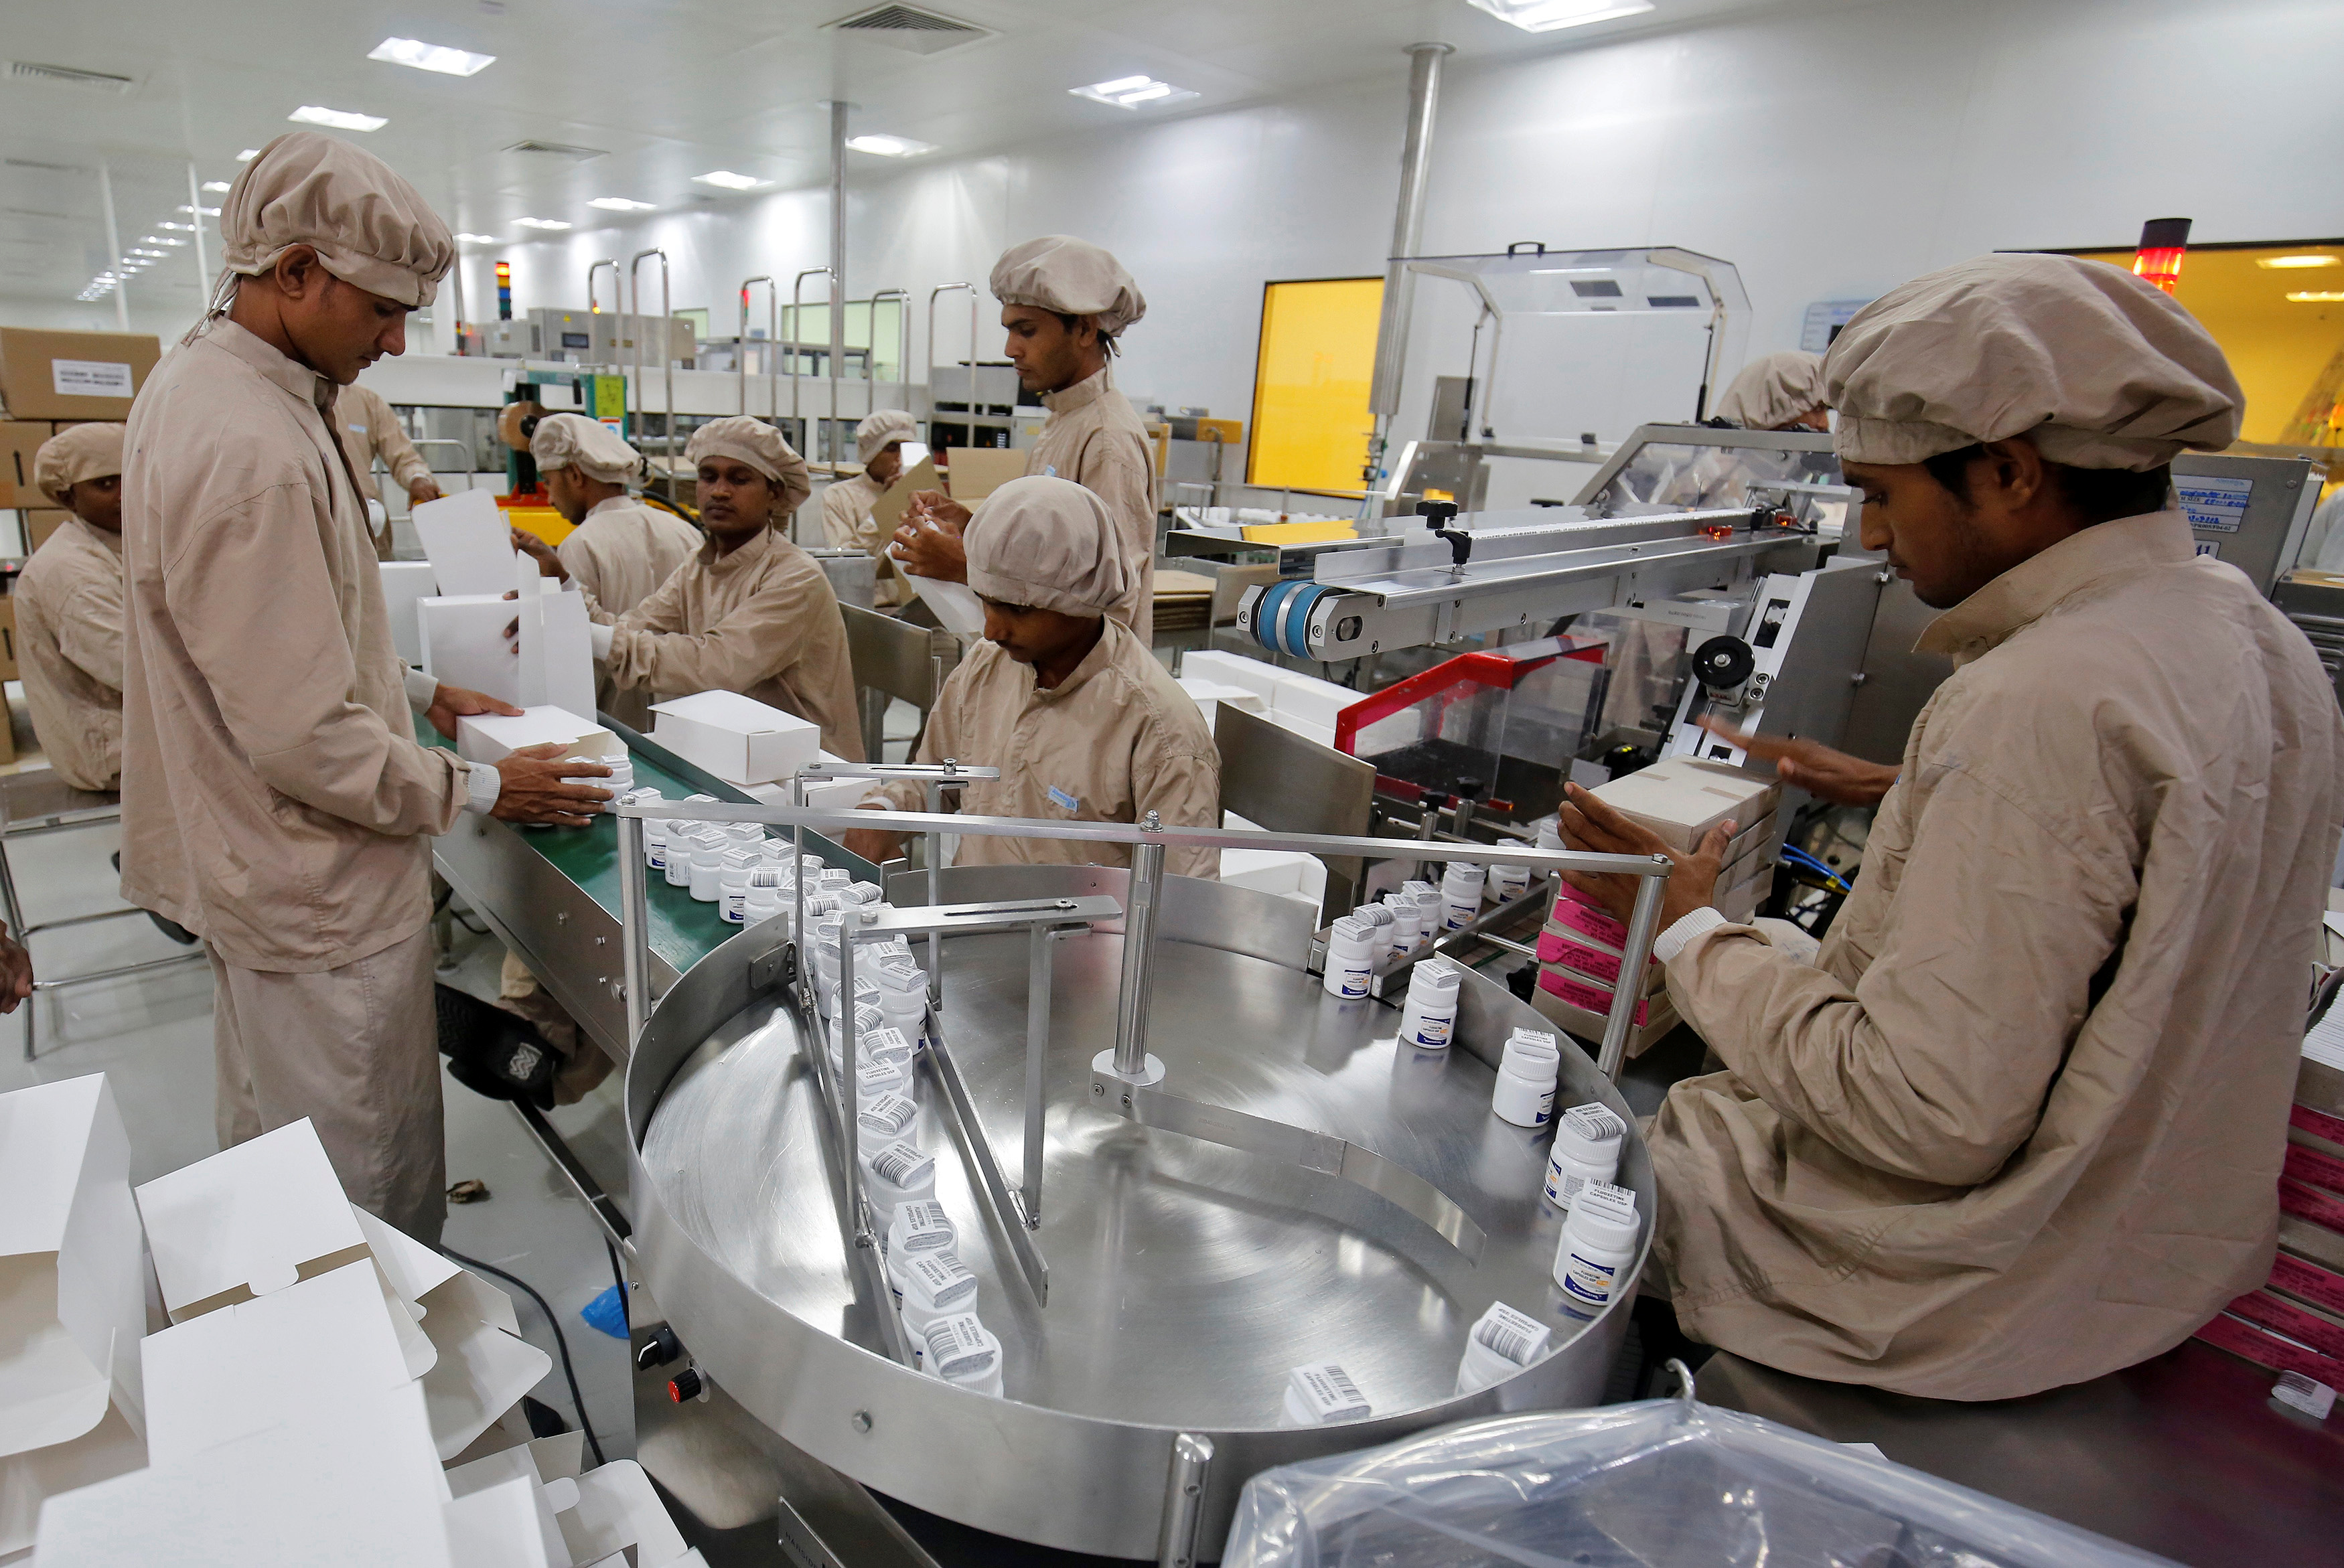 Workers pack medicine bottles inside Alembic Pharmaceutical Limited's plant in Halol, in the western state of Gujarat, India, July 14, 2017. REUTERS/Amit Dave